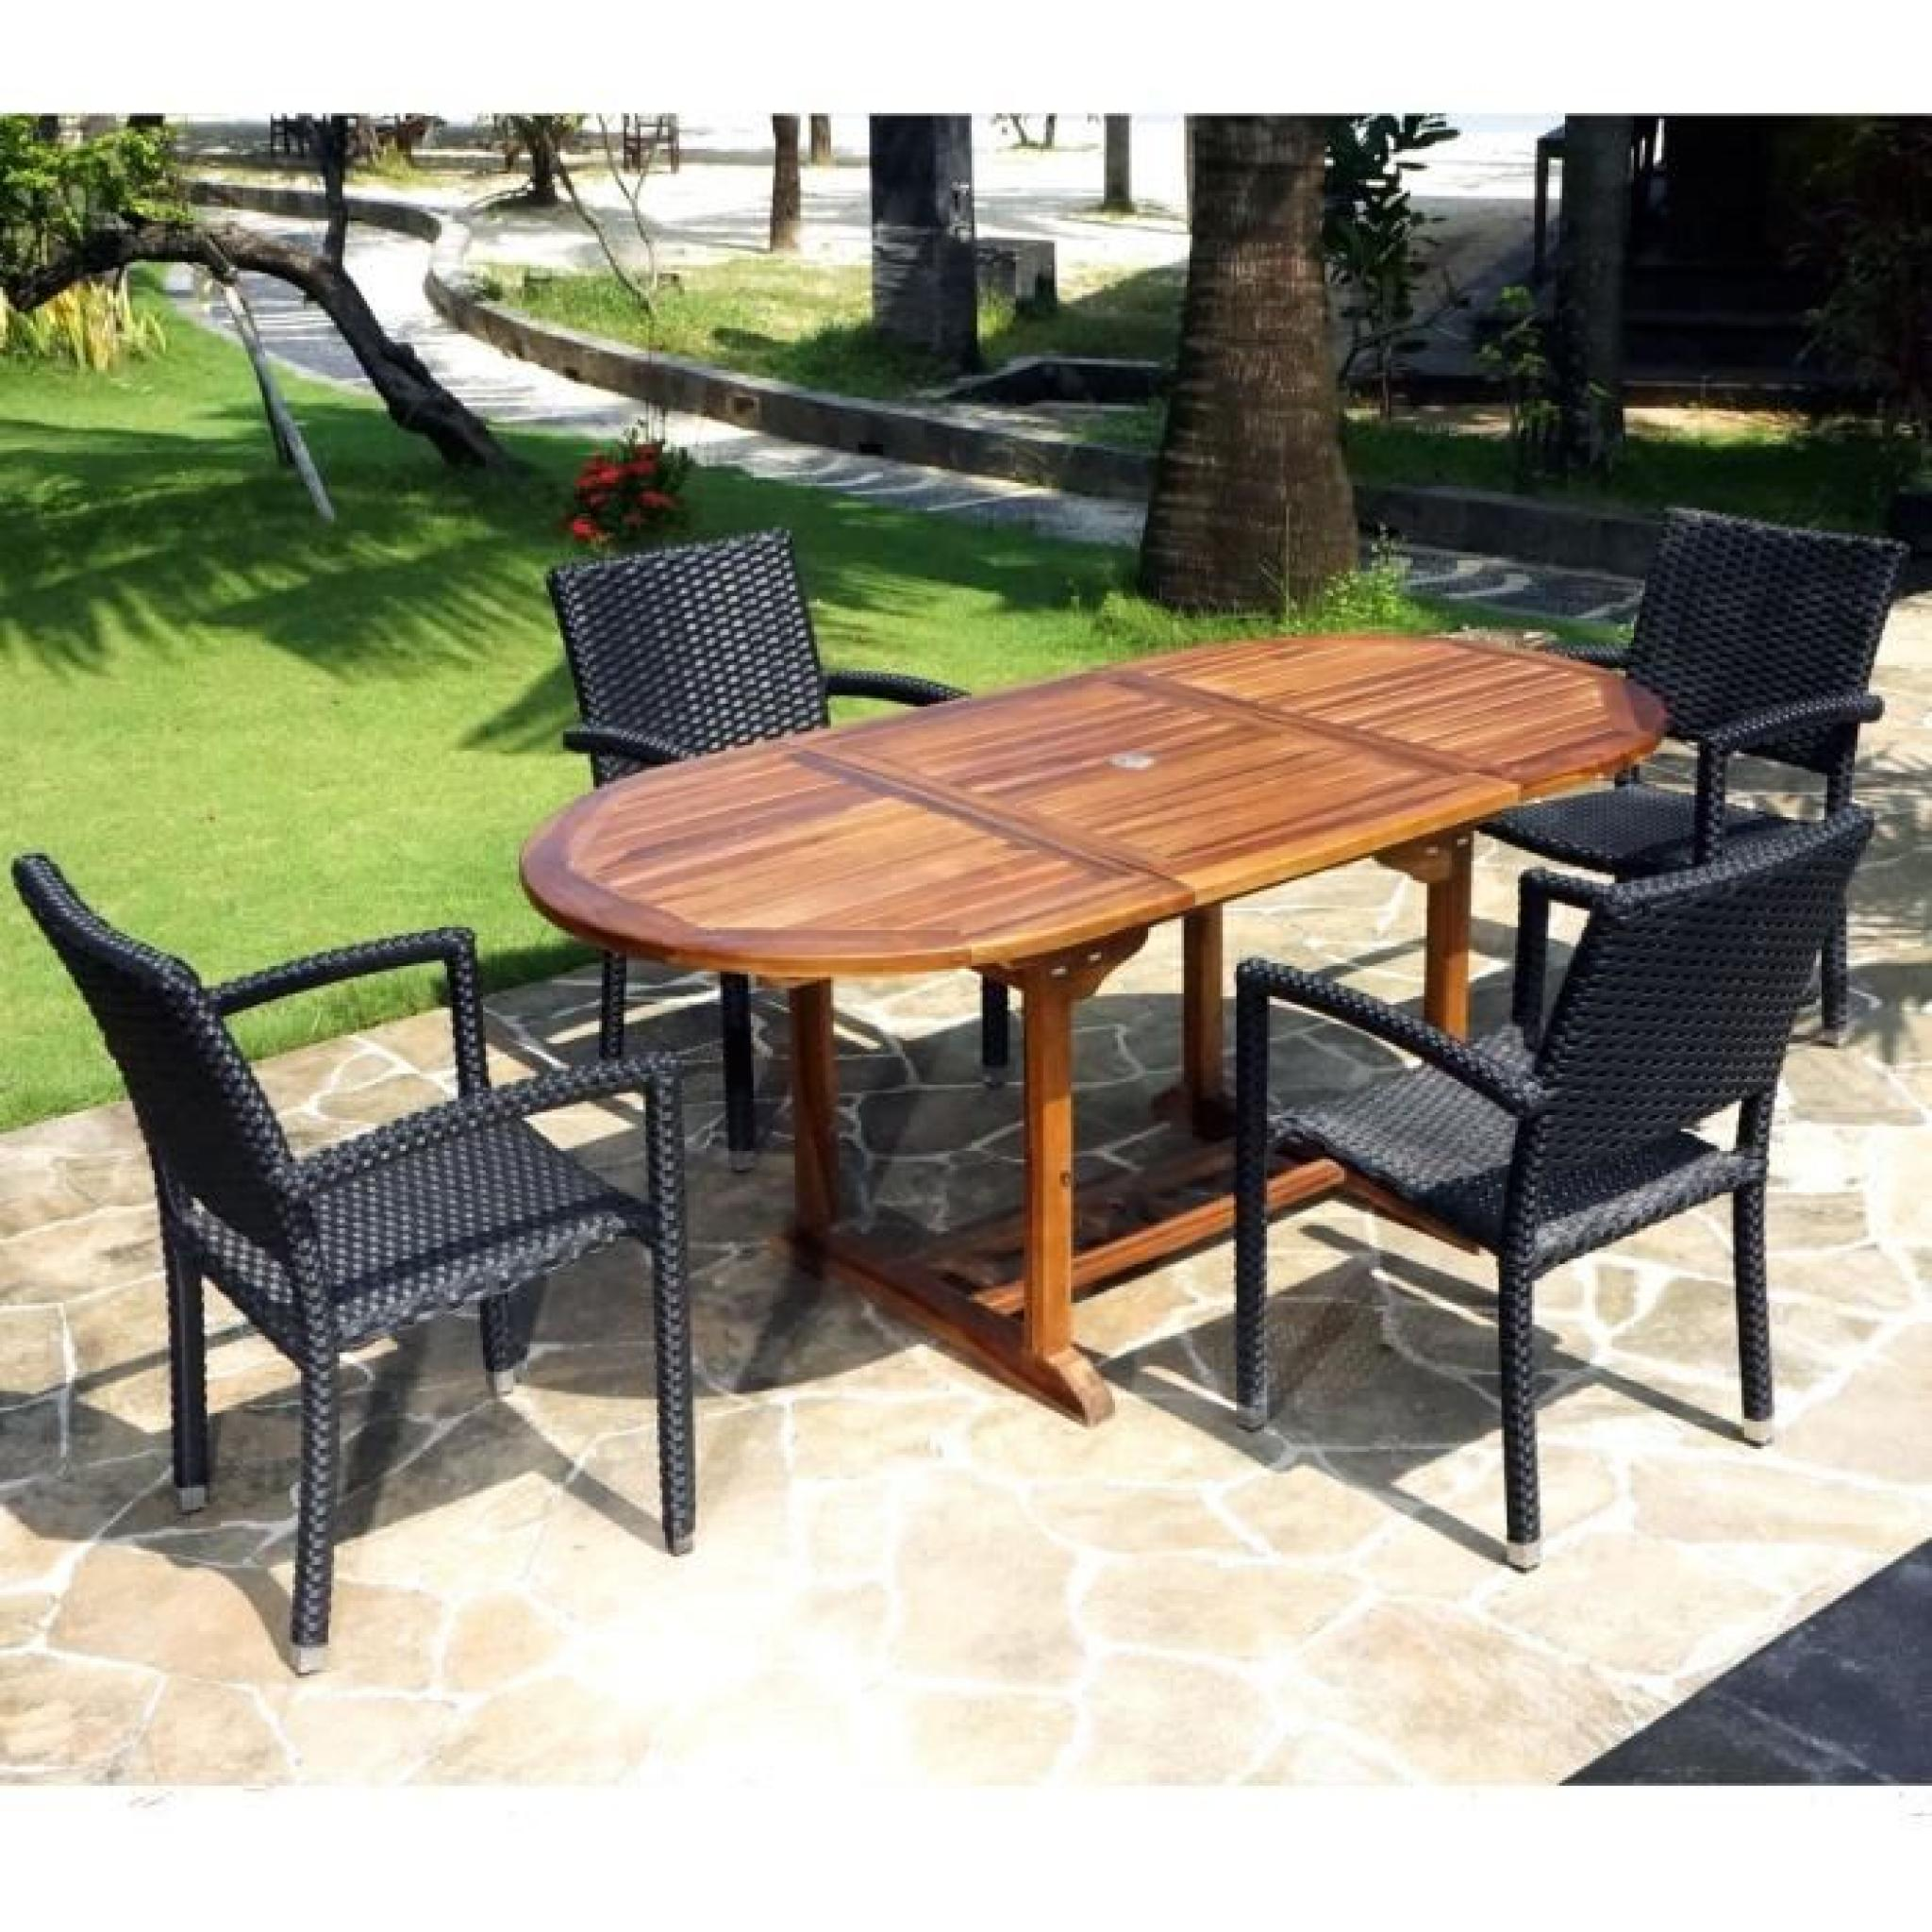 salon de jardin en teck bali 4 fauteuils palma en r sine tress e achat vente salon de jardin. Black Bedroom Furniture Sets. Home Design Ideas